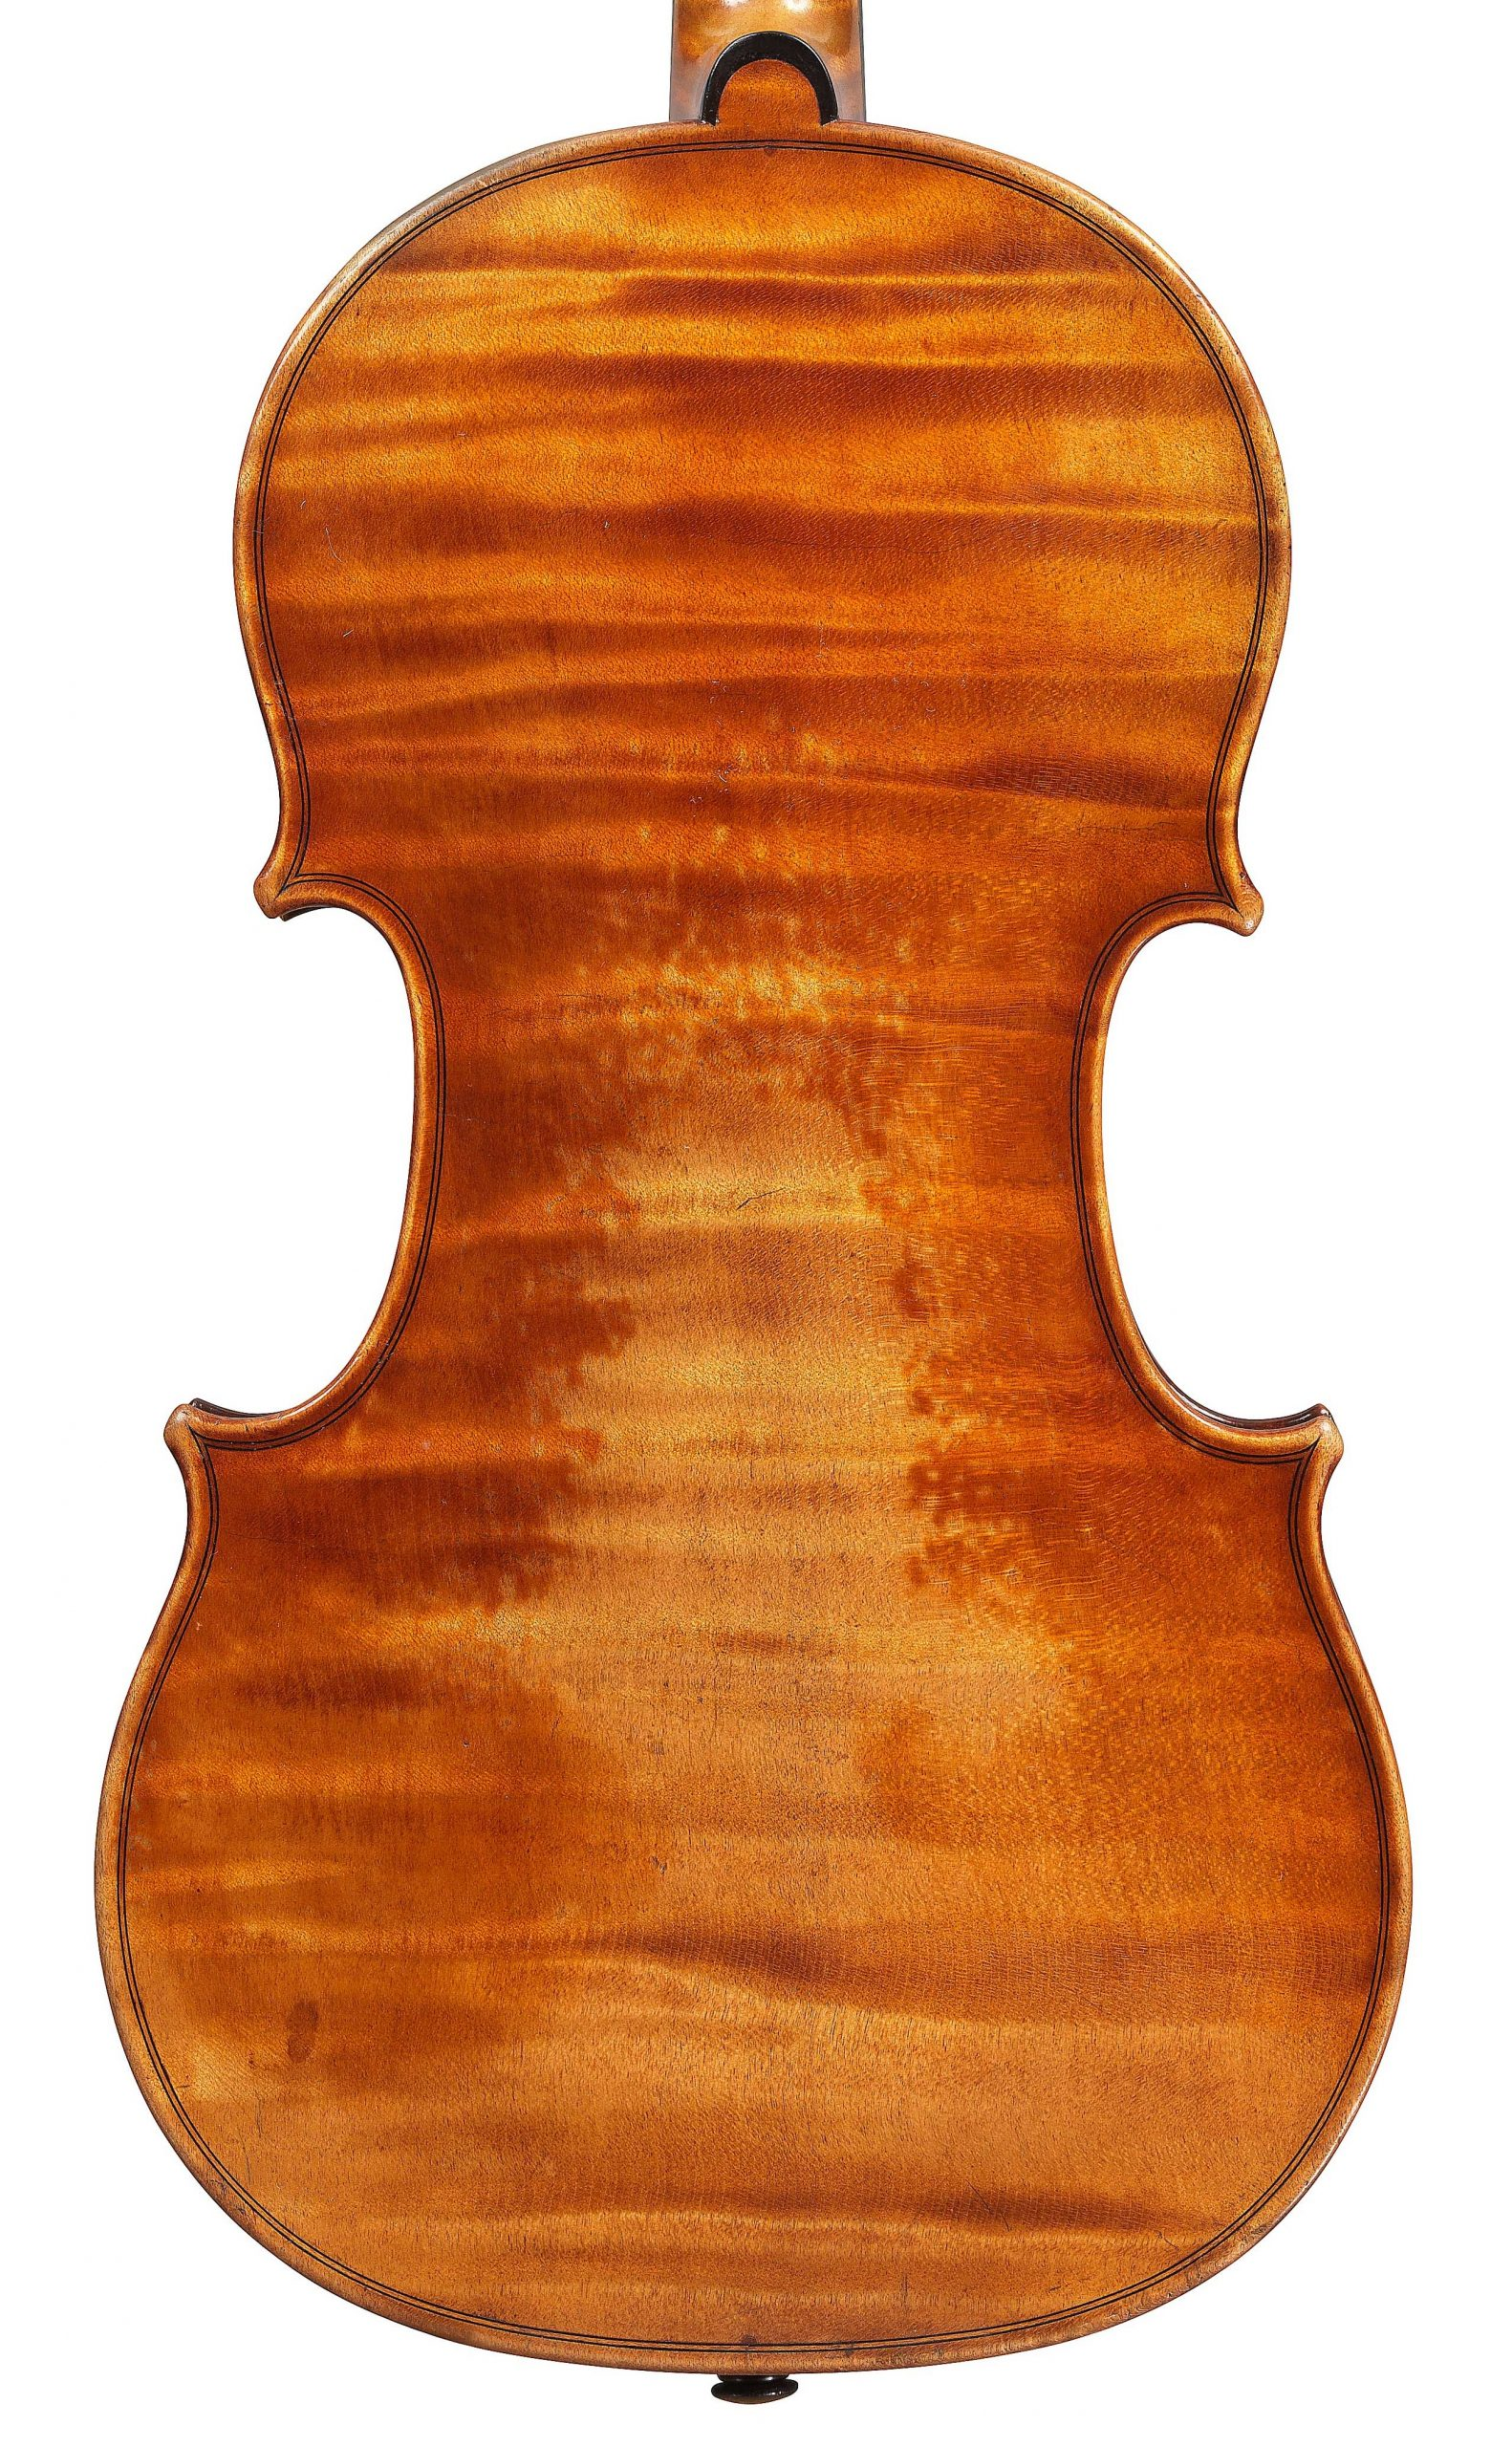 Back of violin by JB Vuillaume, St. Nicolas, dated 1872, exhibited by Ingles & Hayday at Sotheby's in 2012